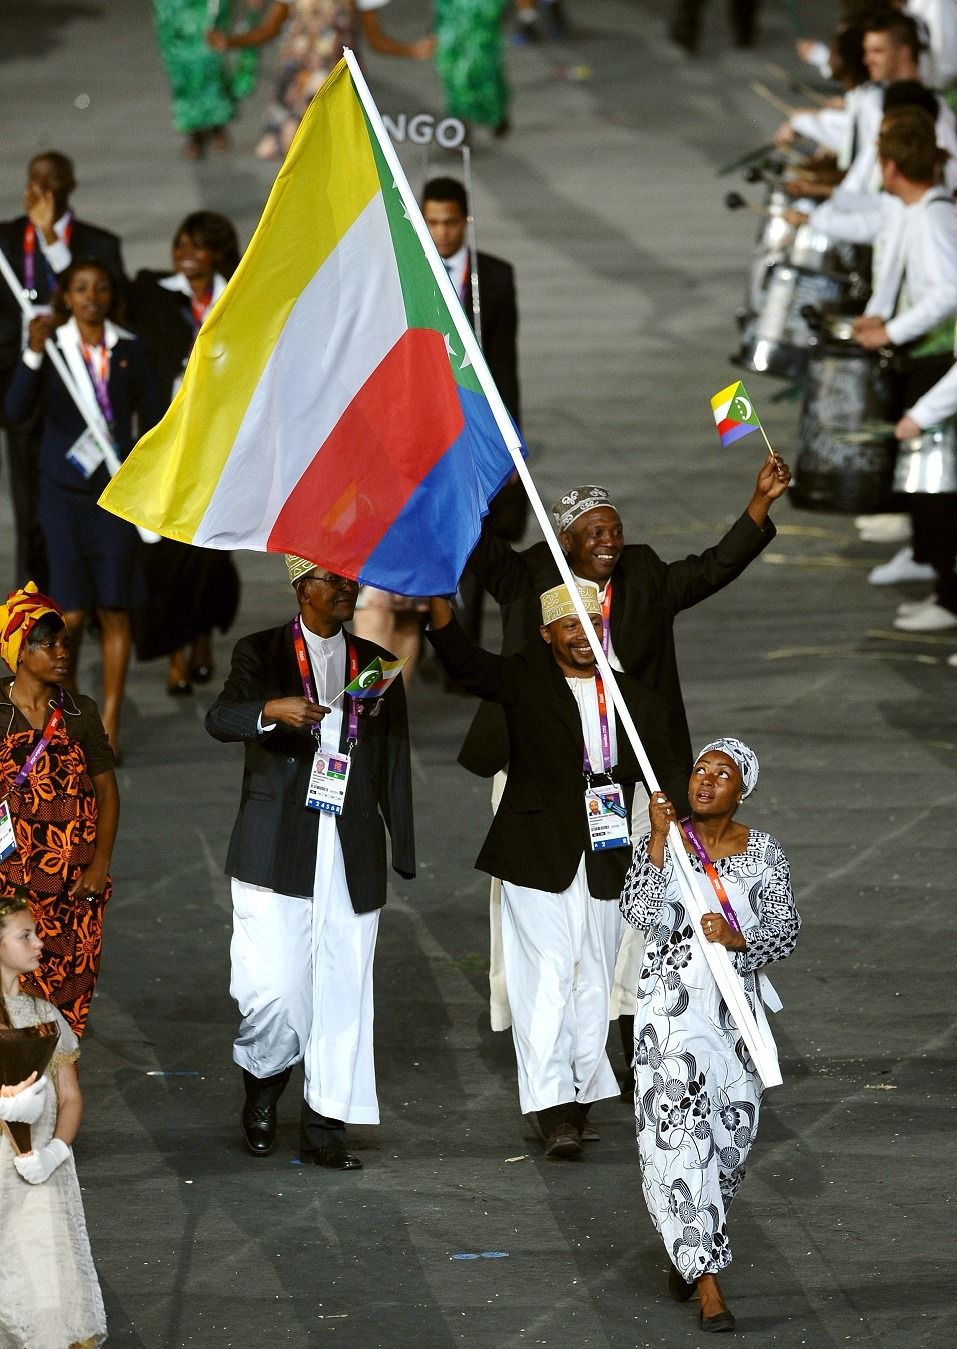 Feta Ahamada of the Comoros Olympic athletics team carries her country's flag